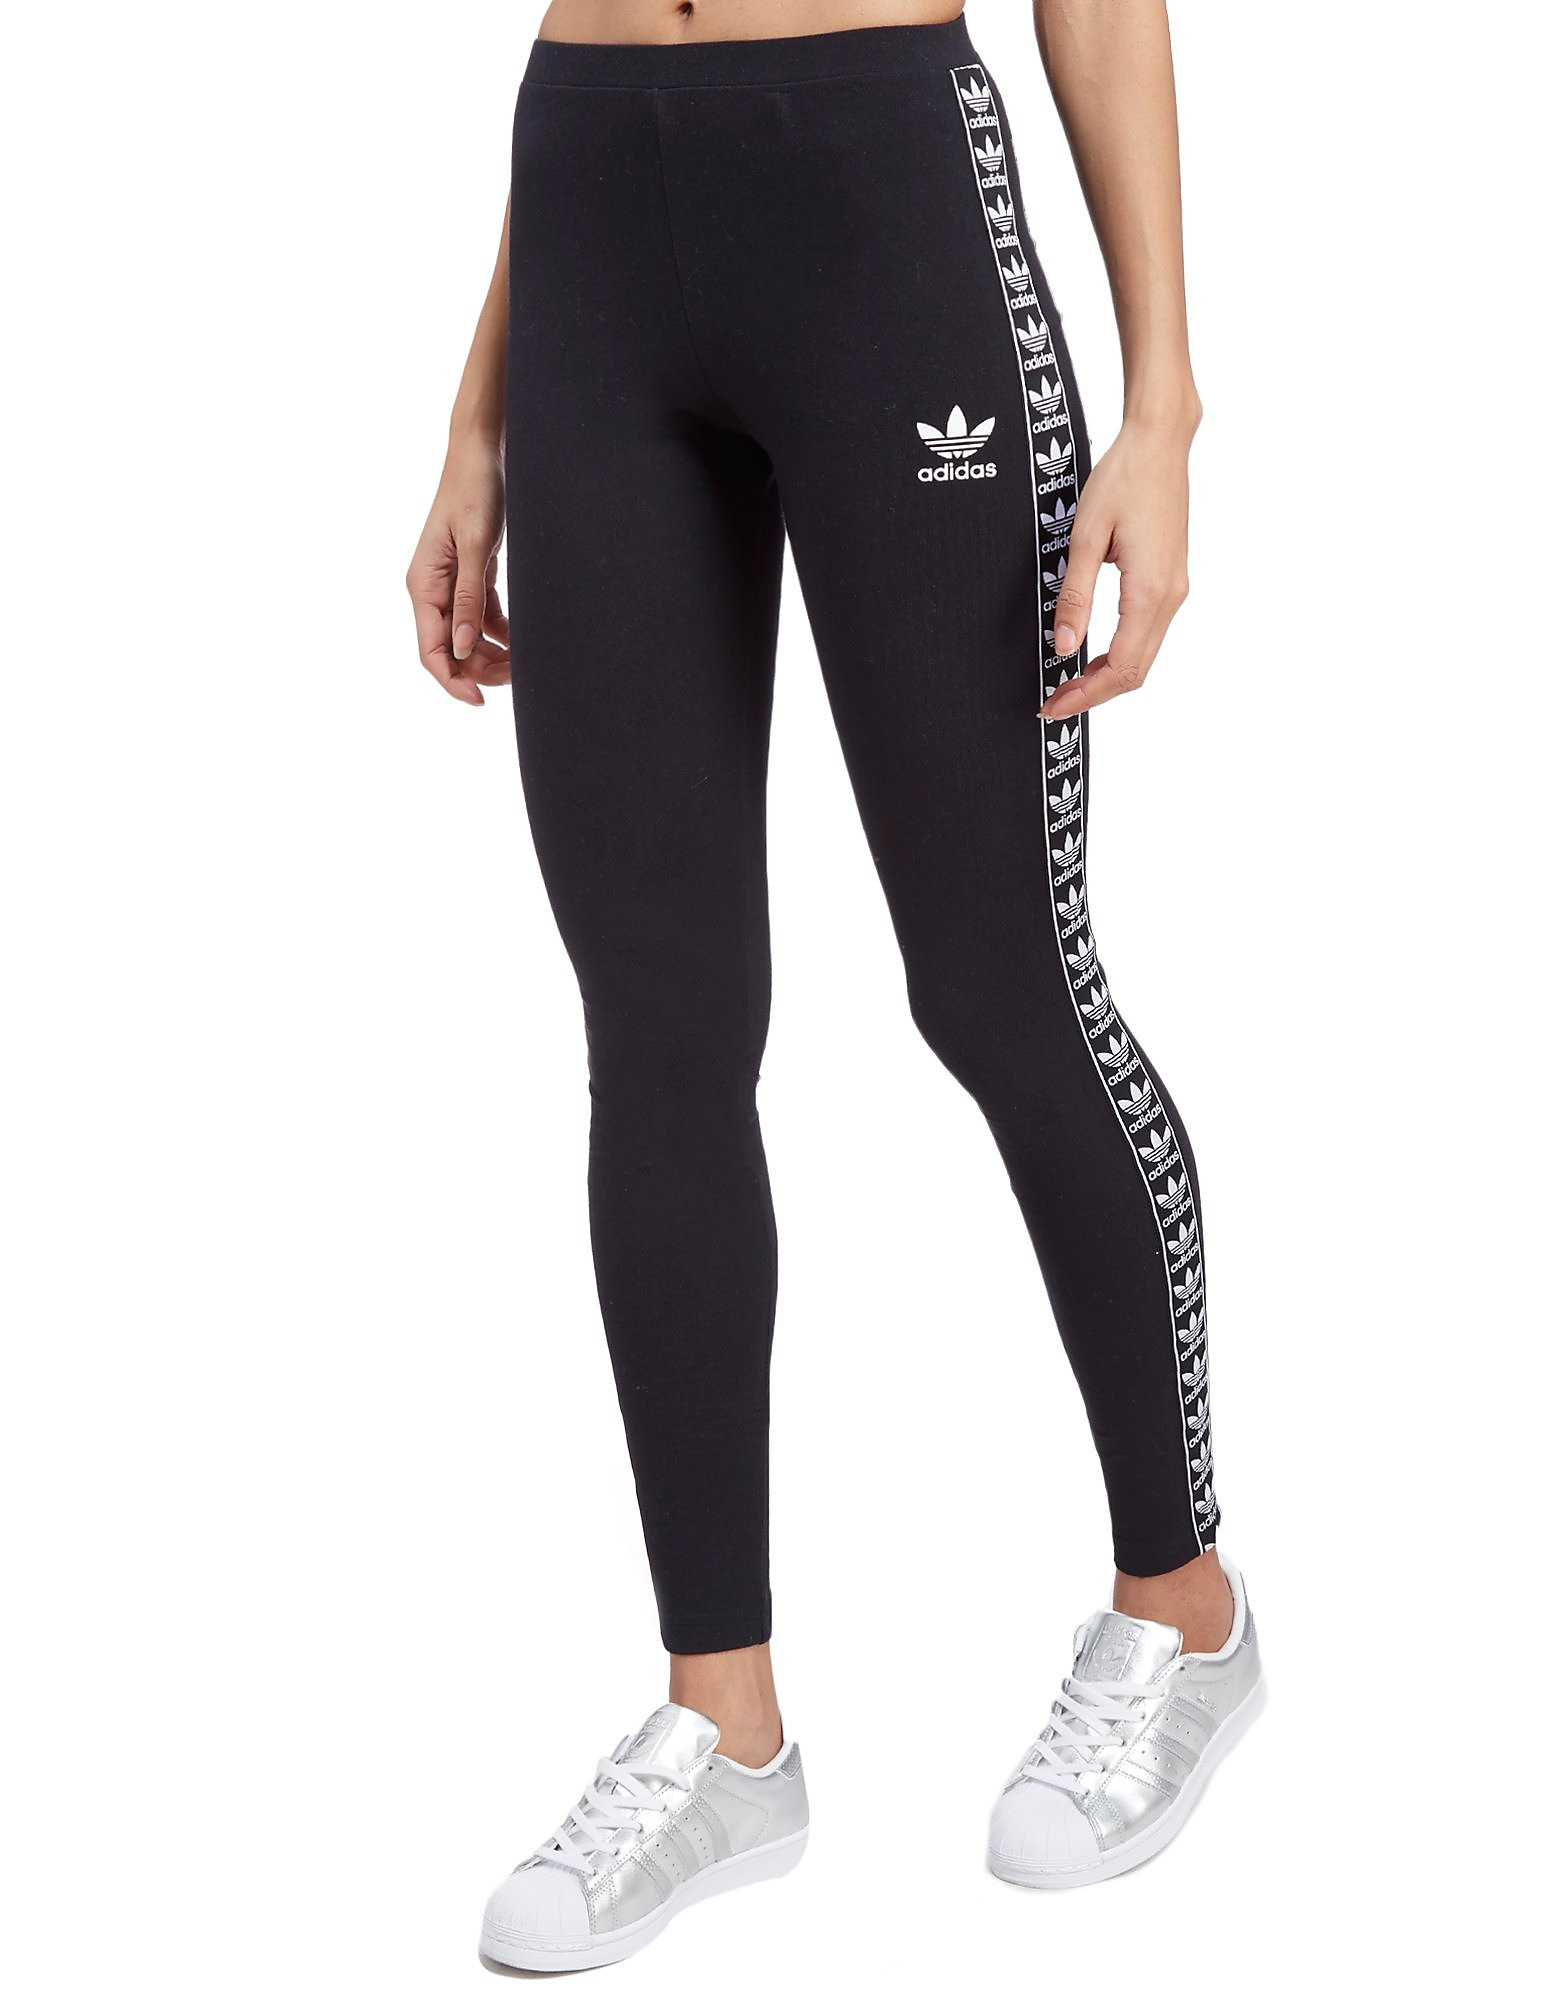 women 39 s leggings running leggings jd sports. Black Bedroom Furniture Sets. Home Design Ideas